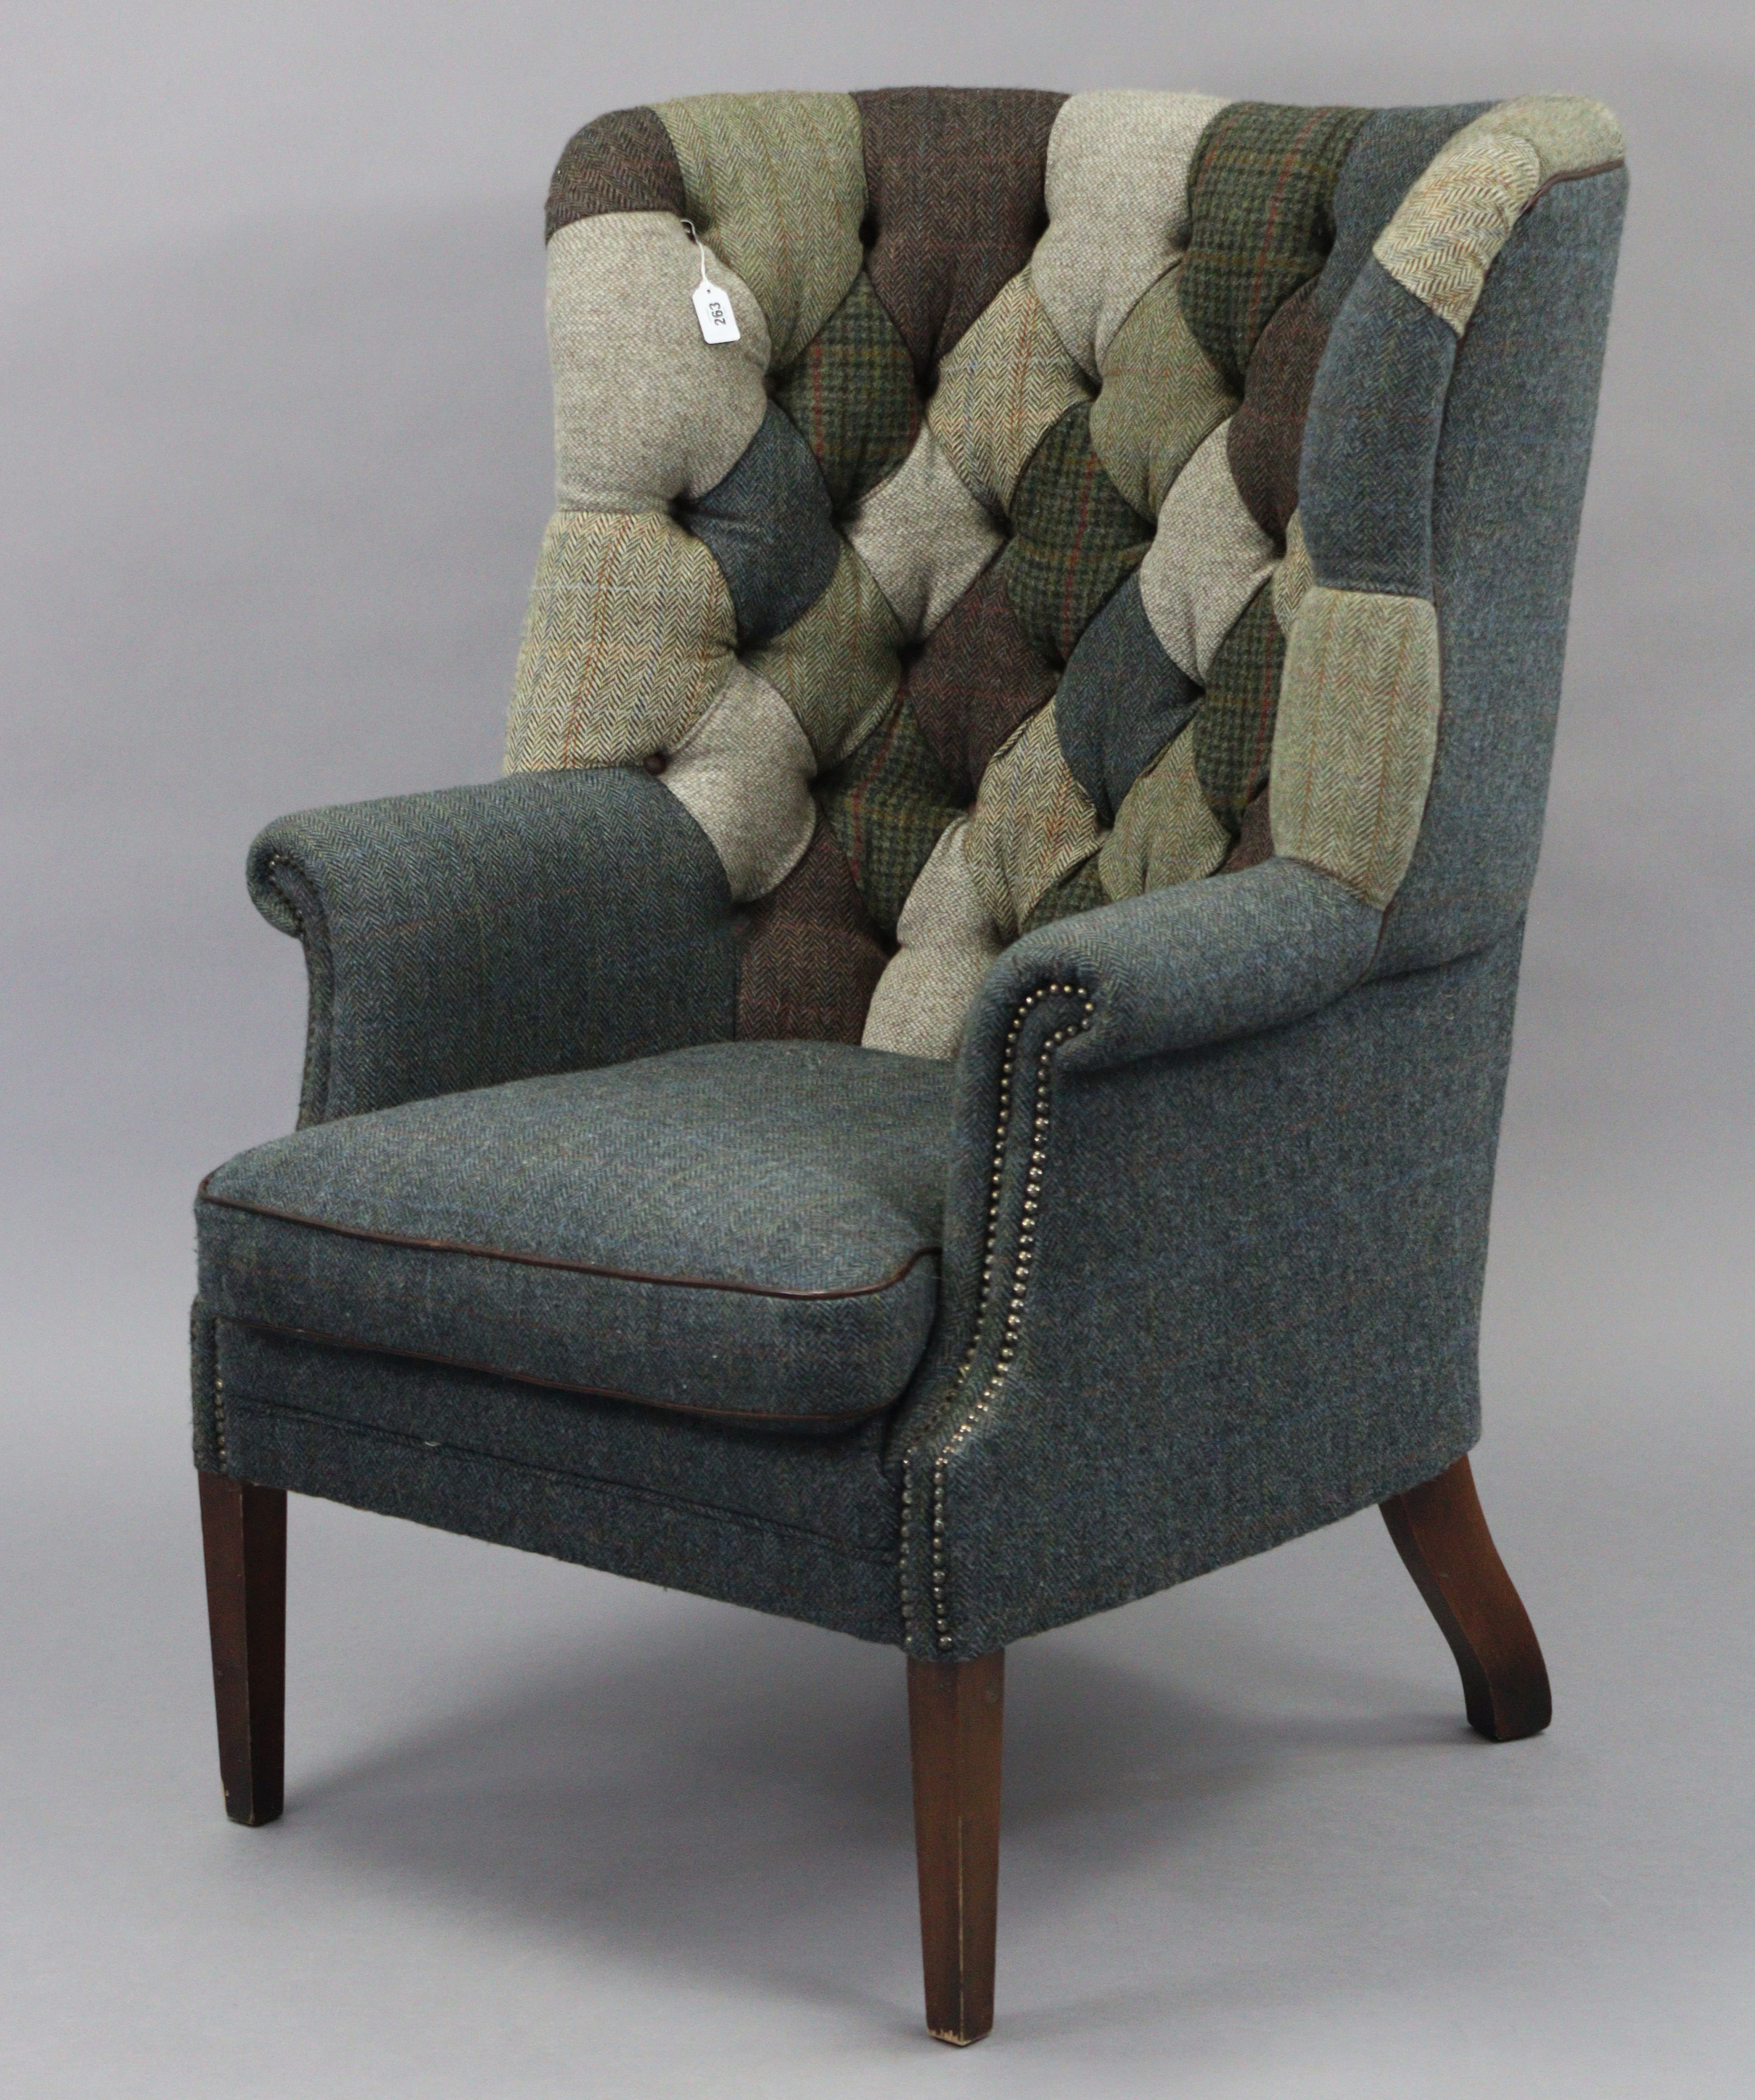 A Tetrad Harris Tweed Mackenzie buttoned-back armchair upholstered multi-coloured material, & on